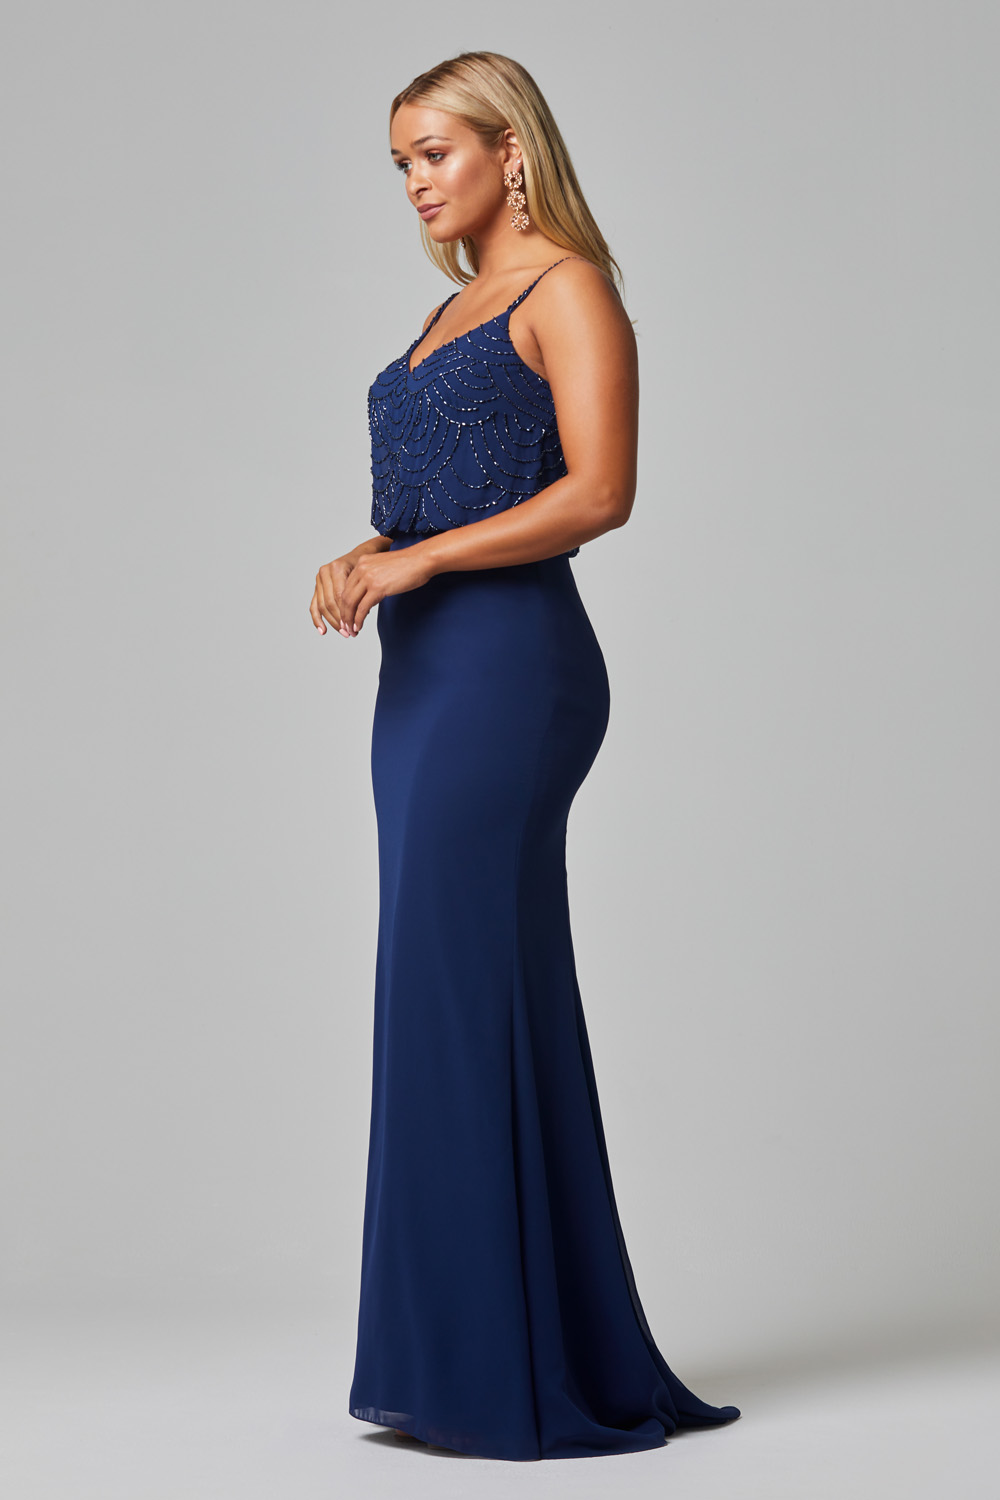 Valencia Bridesmaid Dress navy side